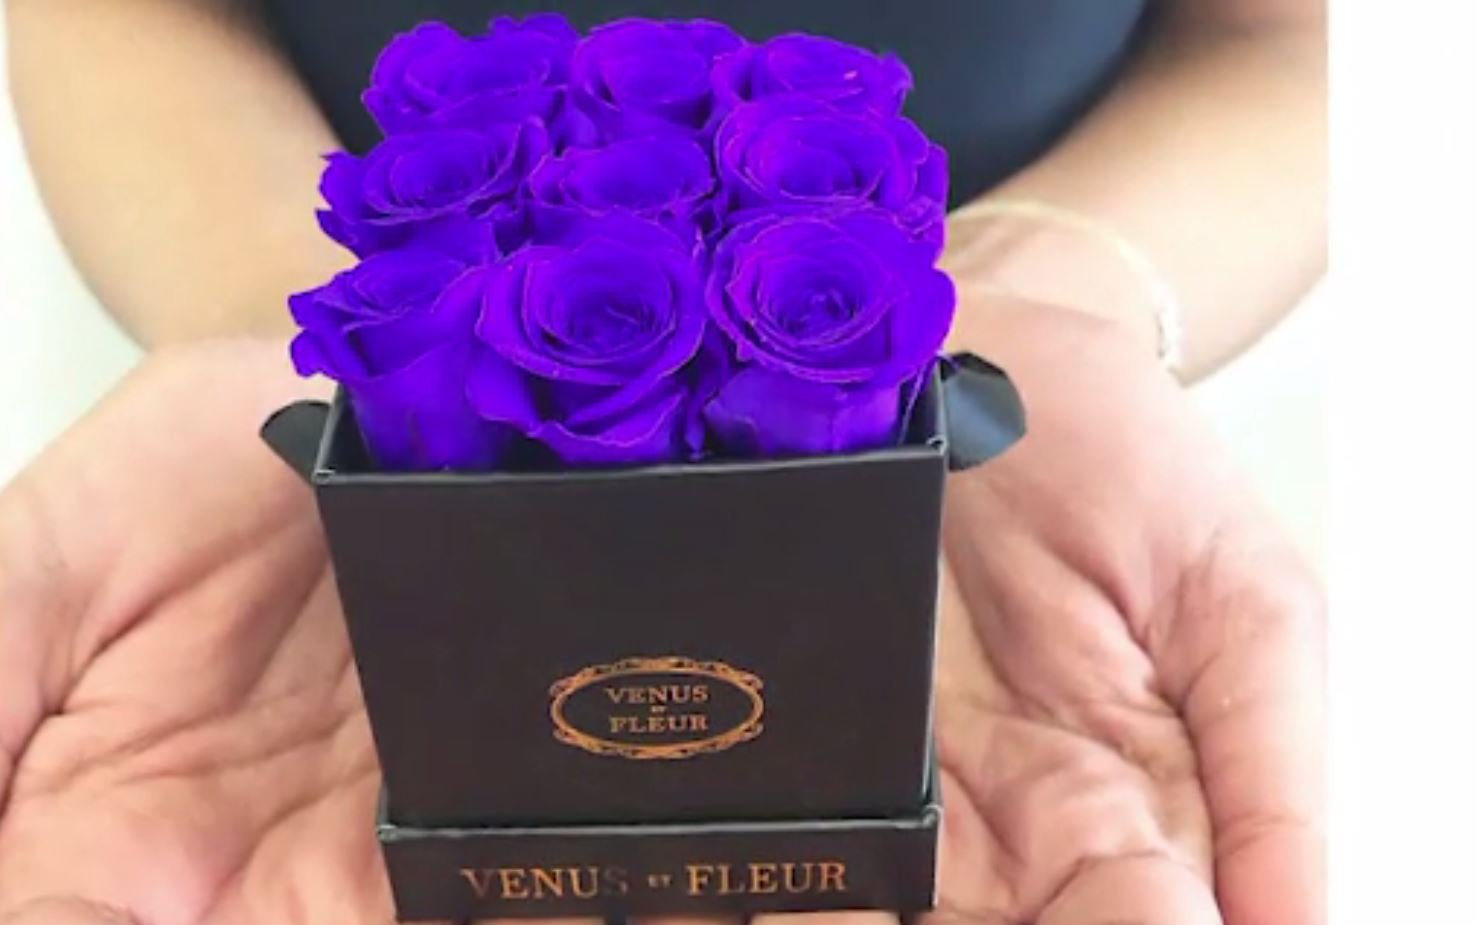 These roses are imported from South America don't come cheap. (Source: Venus Et Fleur/CNN)